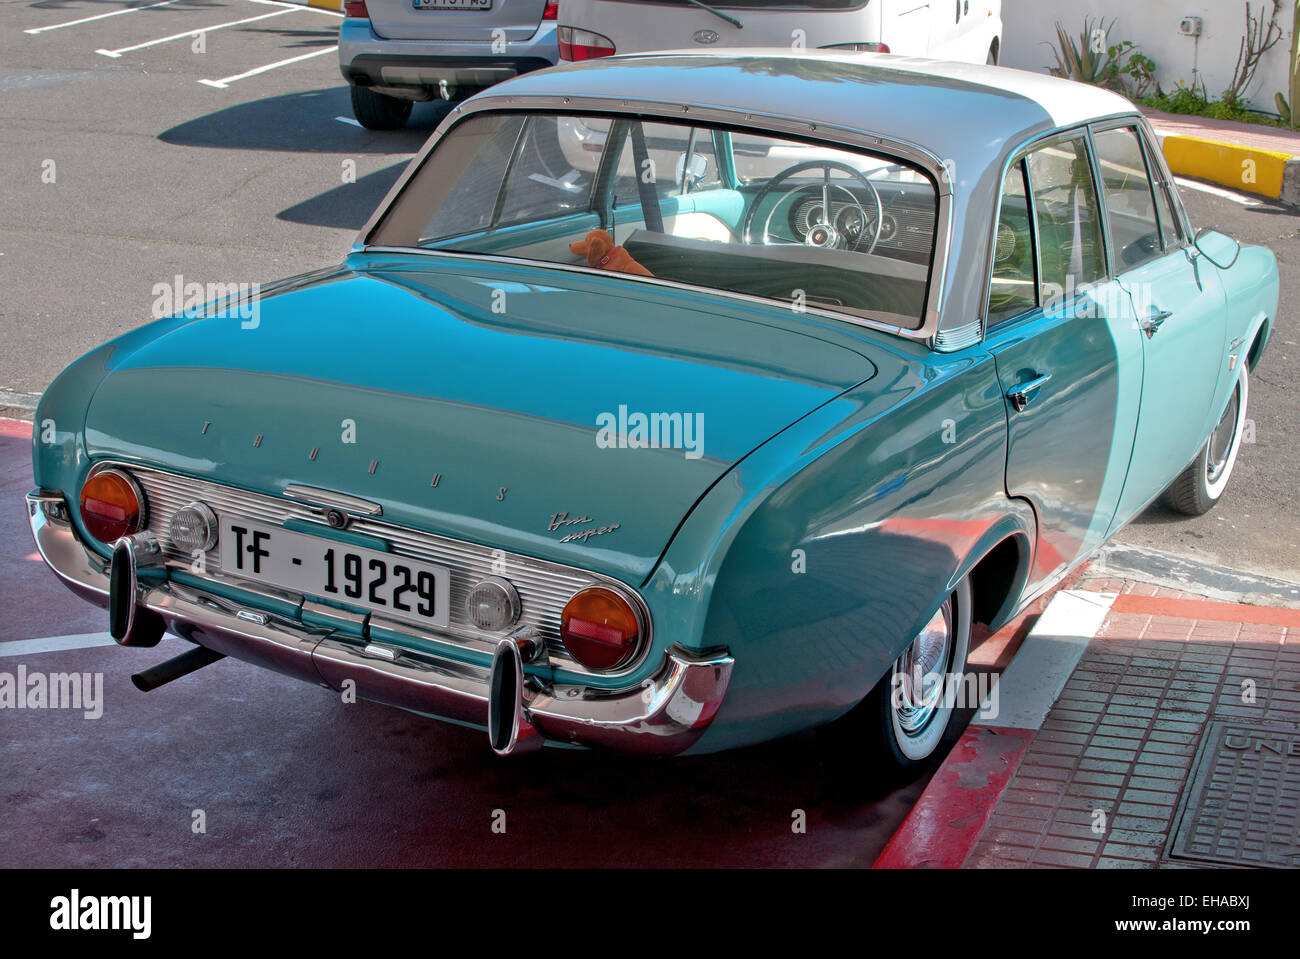 car ford taunus 17m p3 bath tub blue model year 1960 1964 stock photo 79519514 alamy. Black Bedroom Furniture Sets. Home Design Ideas